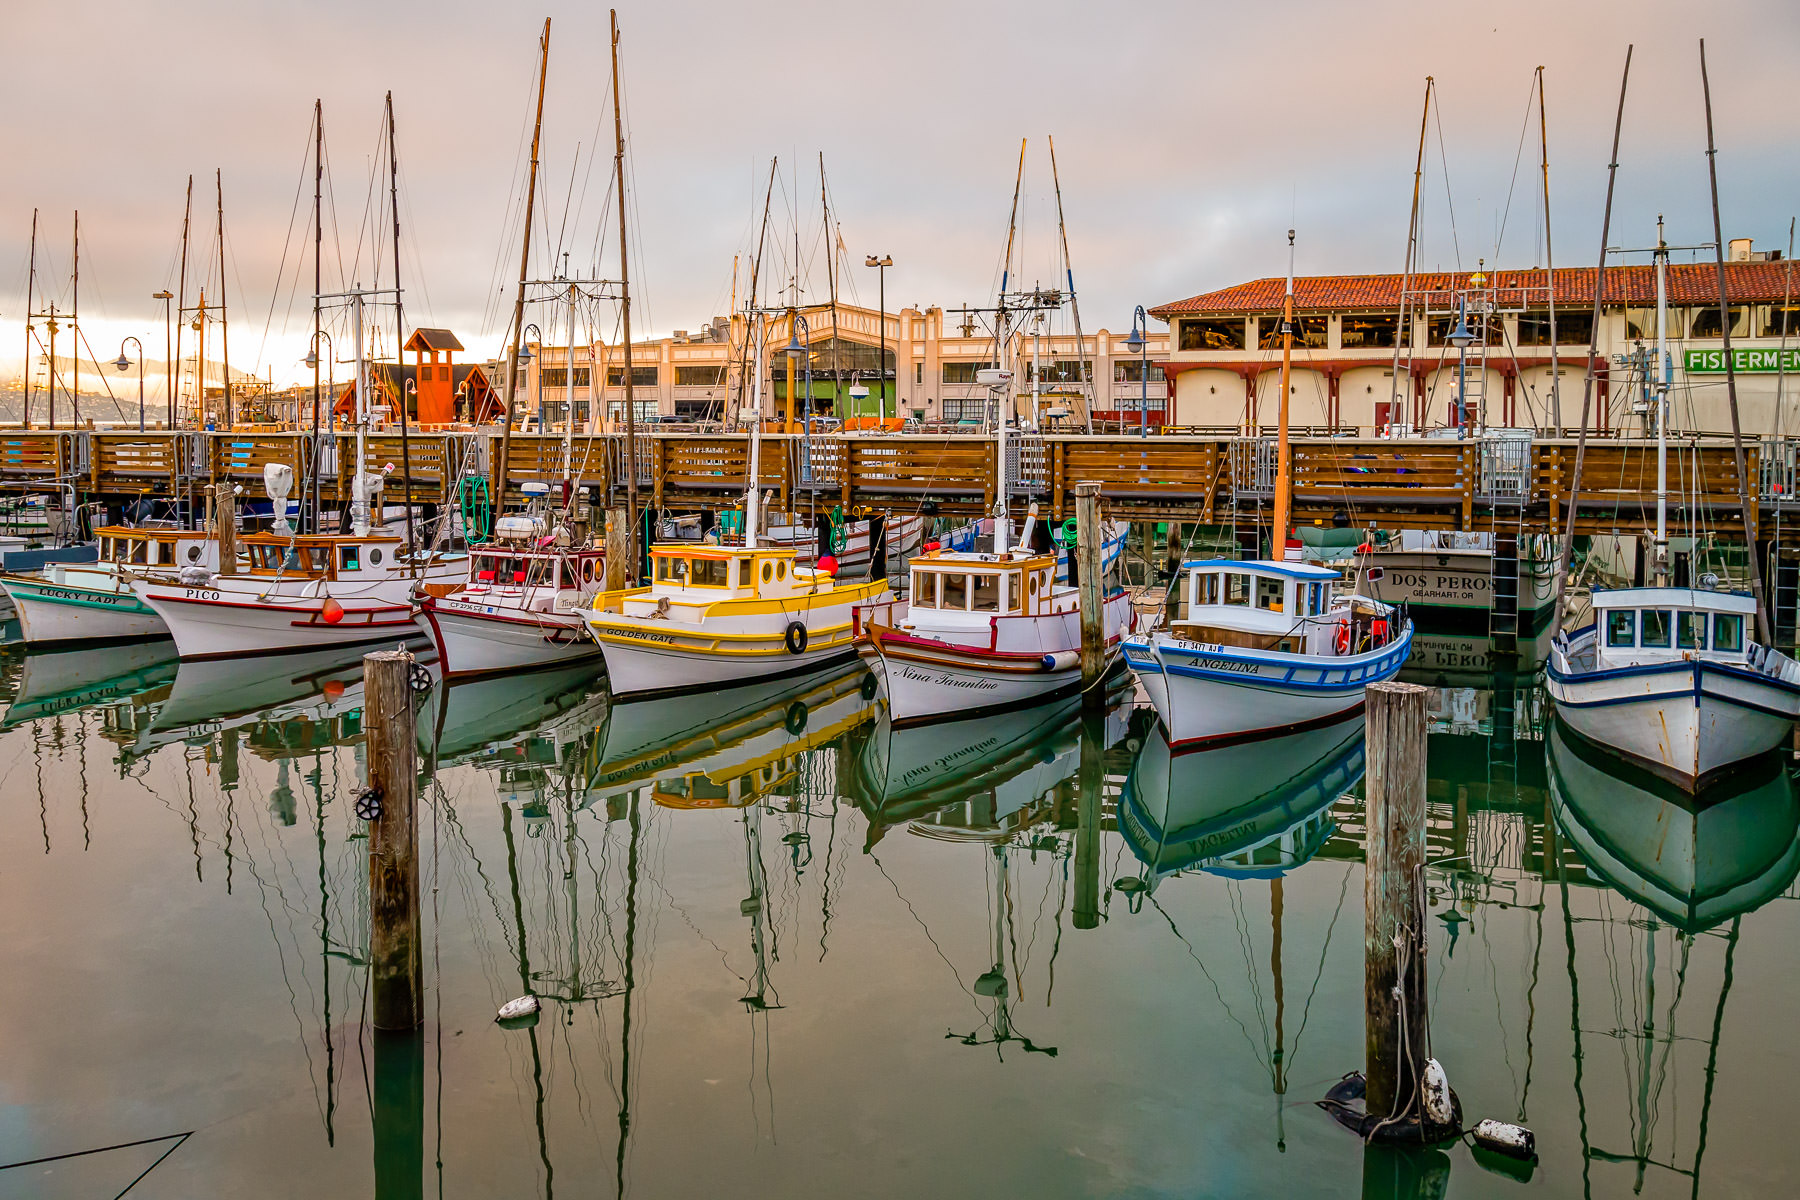 Multi-colored sailboats docked in the early morning near Fisherman's Wharf, San Francisco.